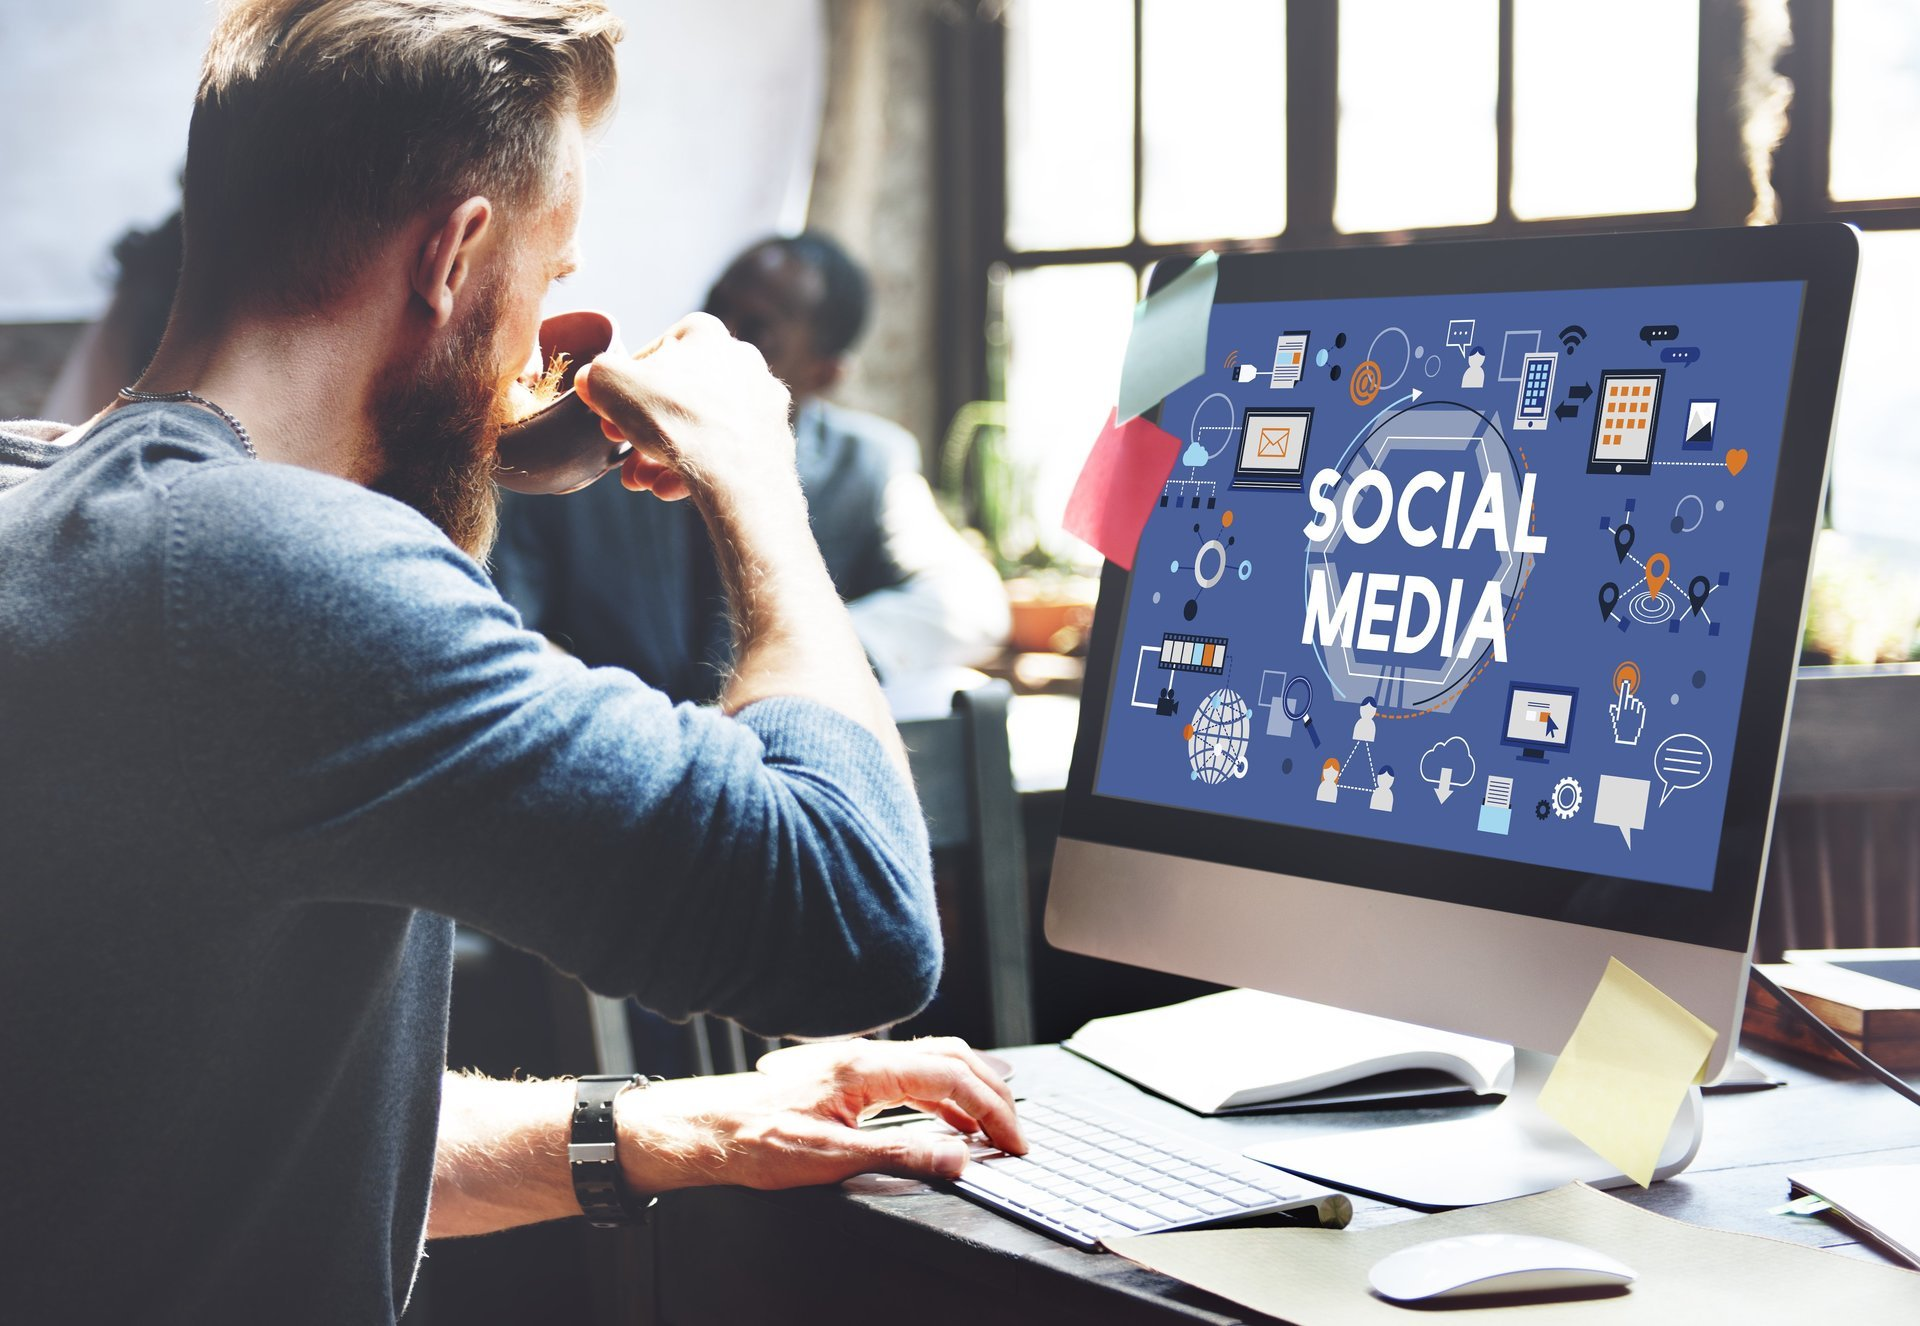 TNT United Services Inc. specializes in Social Media Marketing and Management. Located in Centereach, Long Island,  NY  11720 we will but a Social Media Strategy in place that works and caters to your business and that doesn't break the bank.  Contact us today at Info@tntusInc.com or 631-868-4006